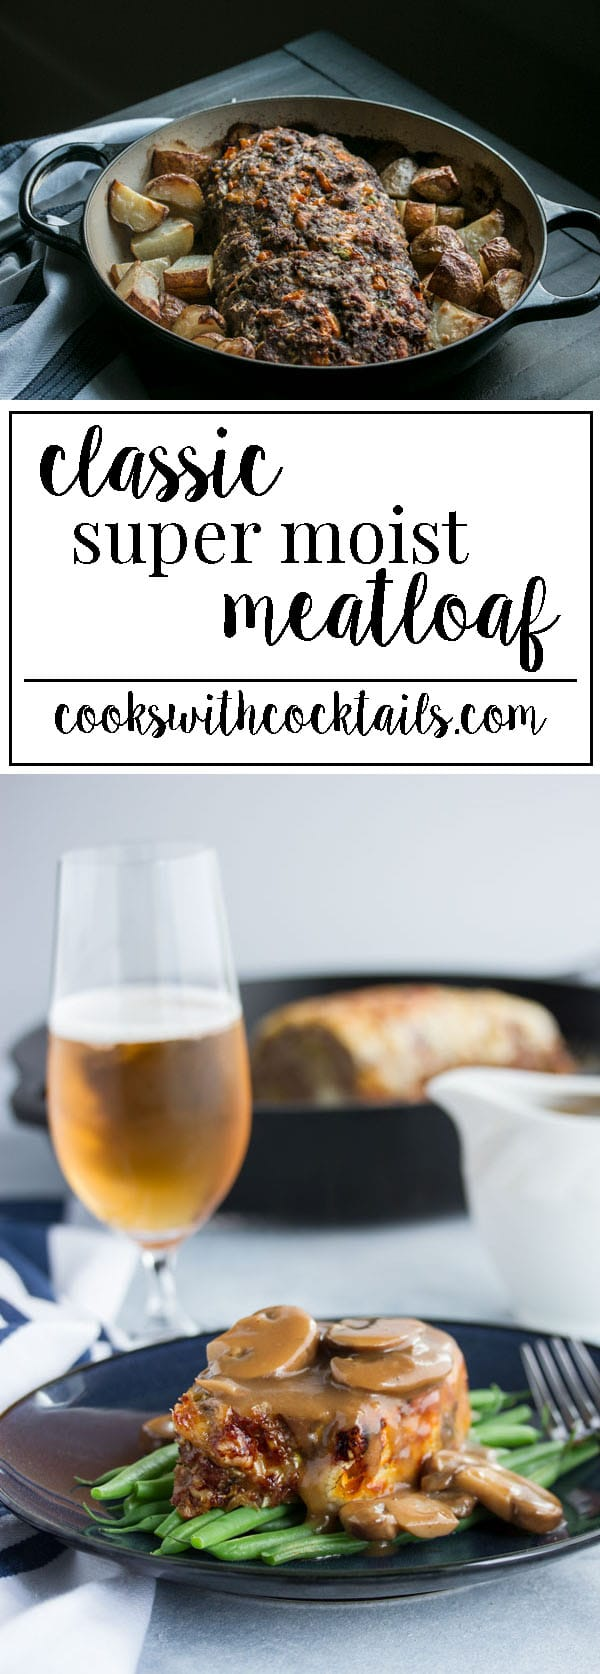 A classic easy meatloaf recipe with tons of veggies like peppers and zucchini, and a good amount of cheese that's quick and easy enough for weeknight dinner but tasty enough to serve to guests.Could even be made into meatloaf muffins. #meatloaf #comfortfood #beefmeatloaf #meatloafrecipe